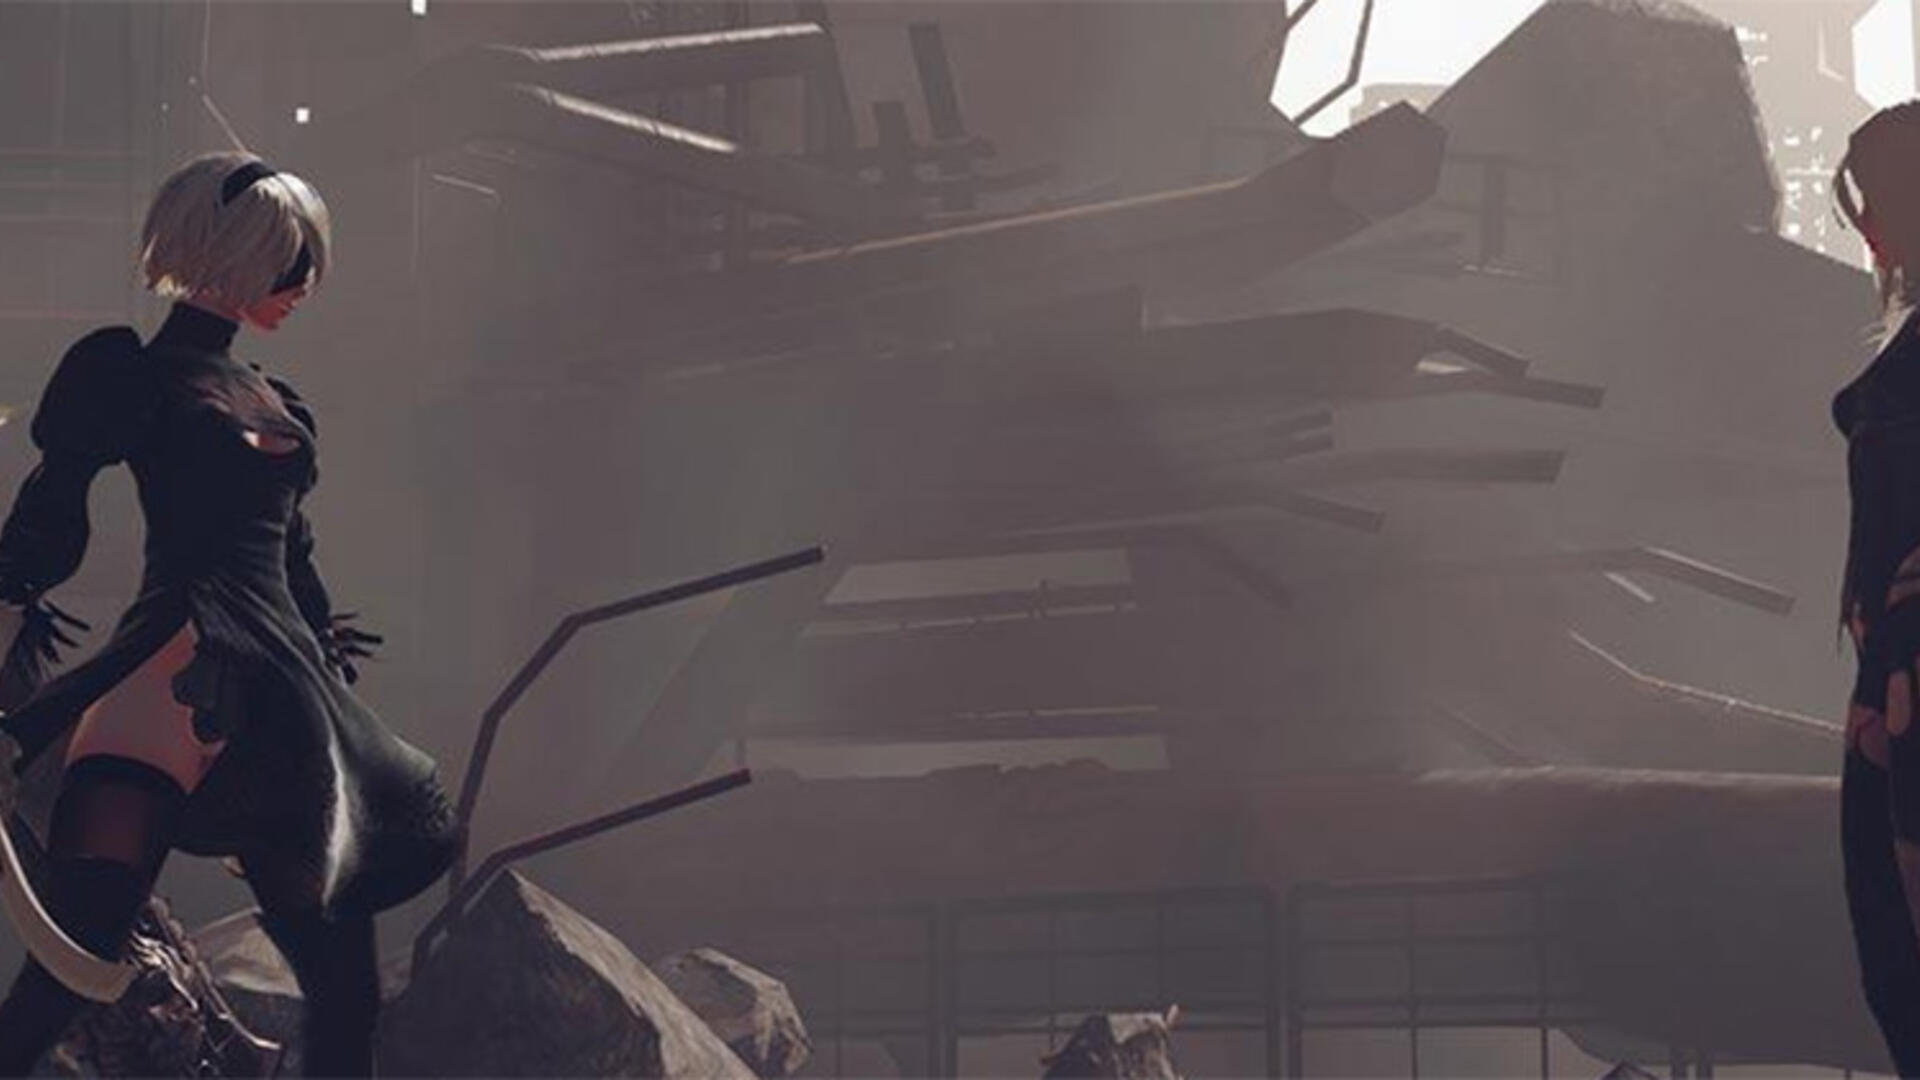 NieR: Automata is the Platinum Game You're Looking For